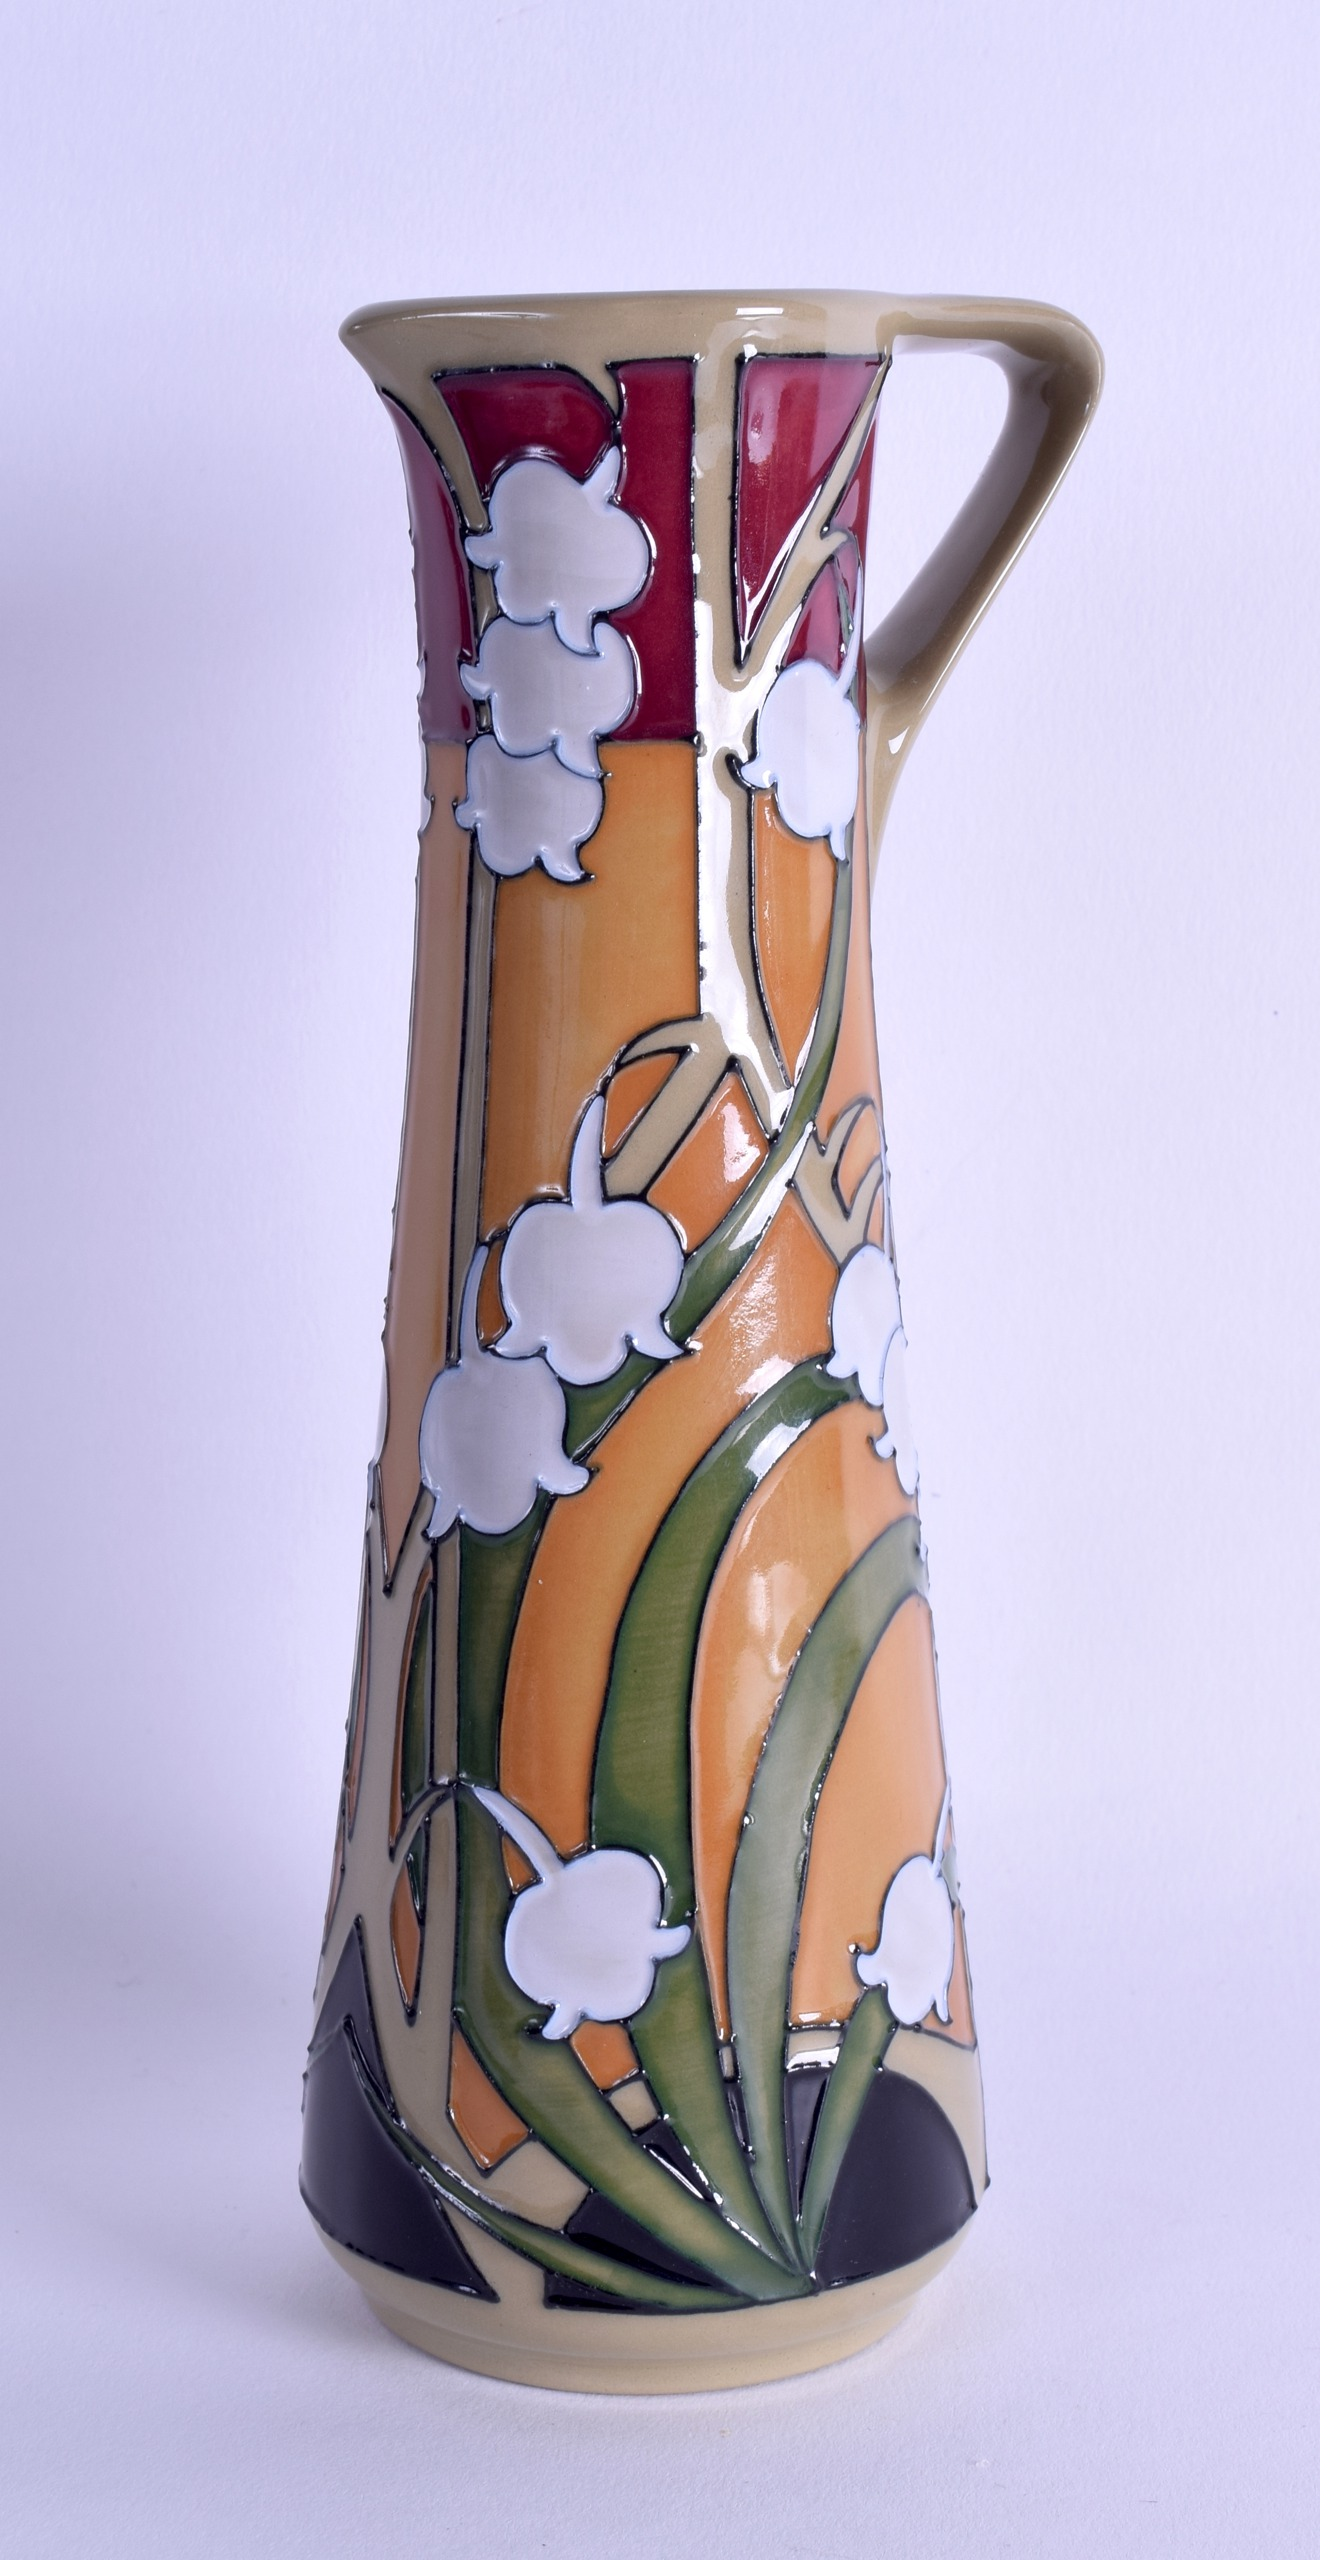 Lot 44 - A MOORCROFT 'LILY OF THE VALLEY' JUG designed by Emma Bossons. 18.5 cm high.